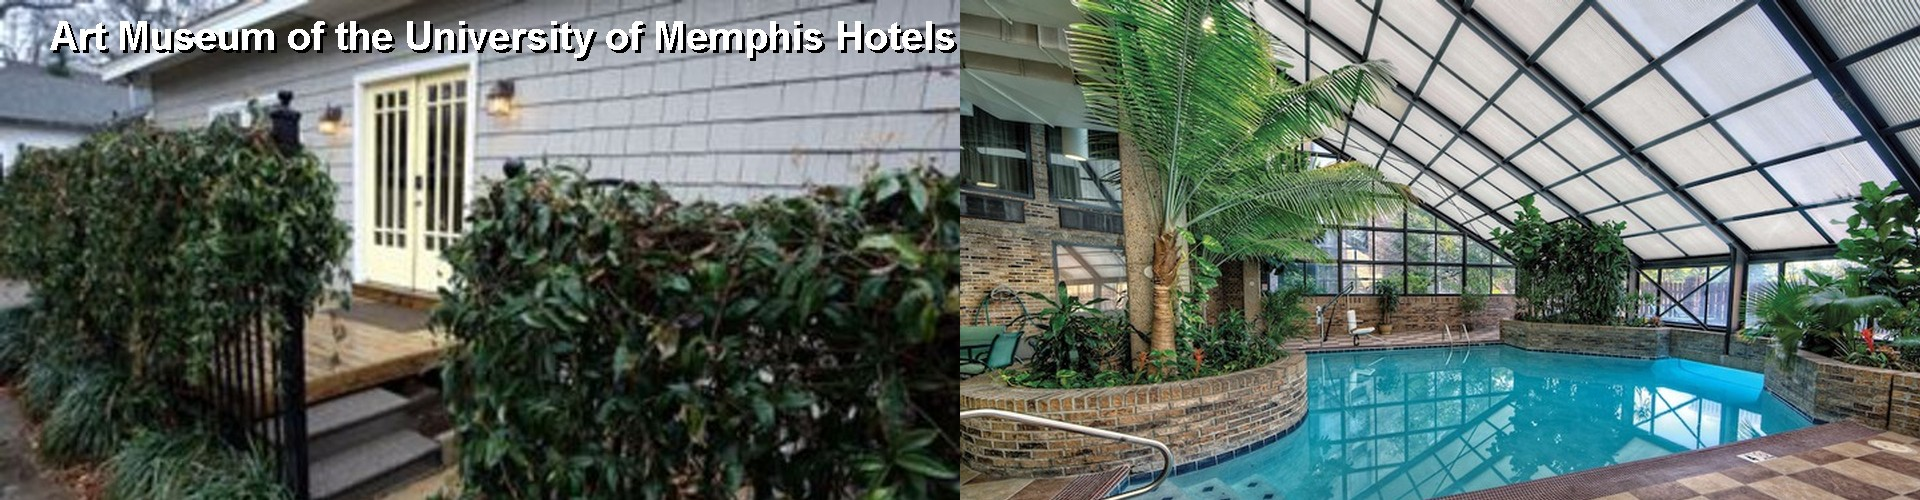 5 Best Hotels near Art Museum of the University of Memphis